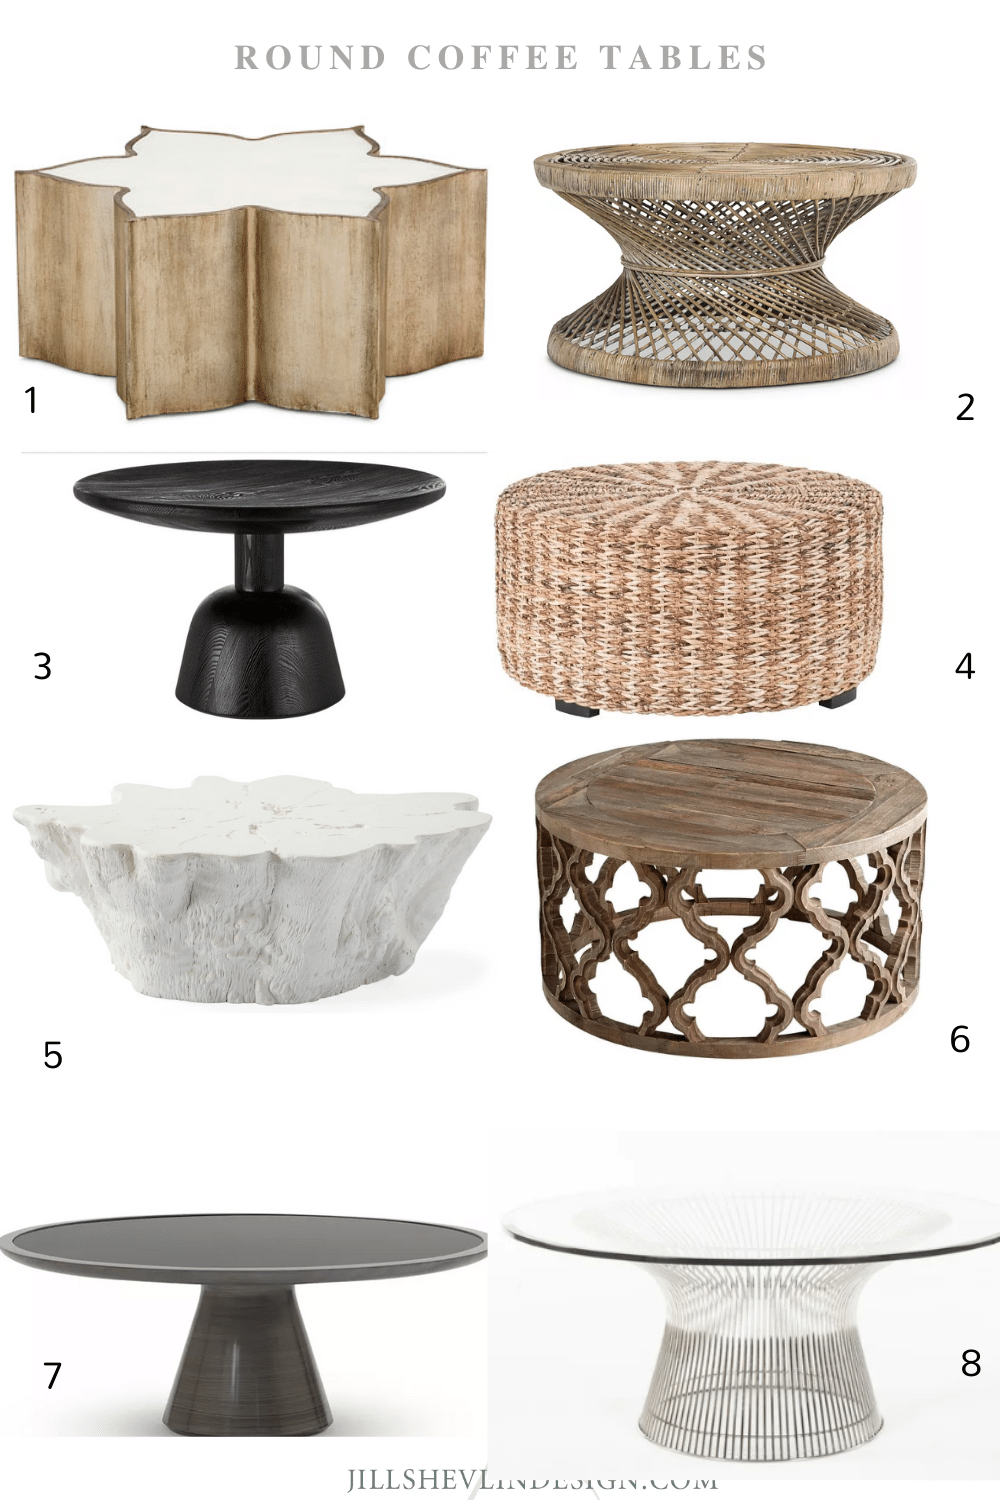 Round Coffee Tables Shop Furniture Vero Beach Home Decor Jill Shevlin Design Vero Beach Interior Designer Coffee Tables Round